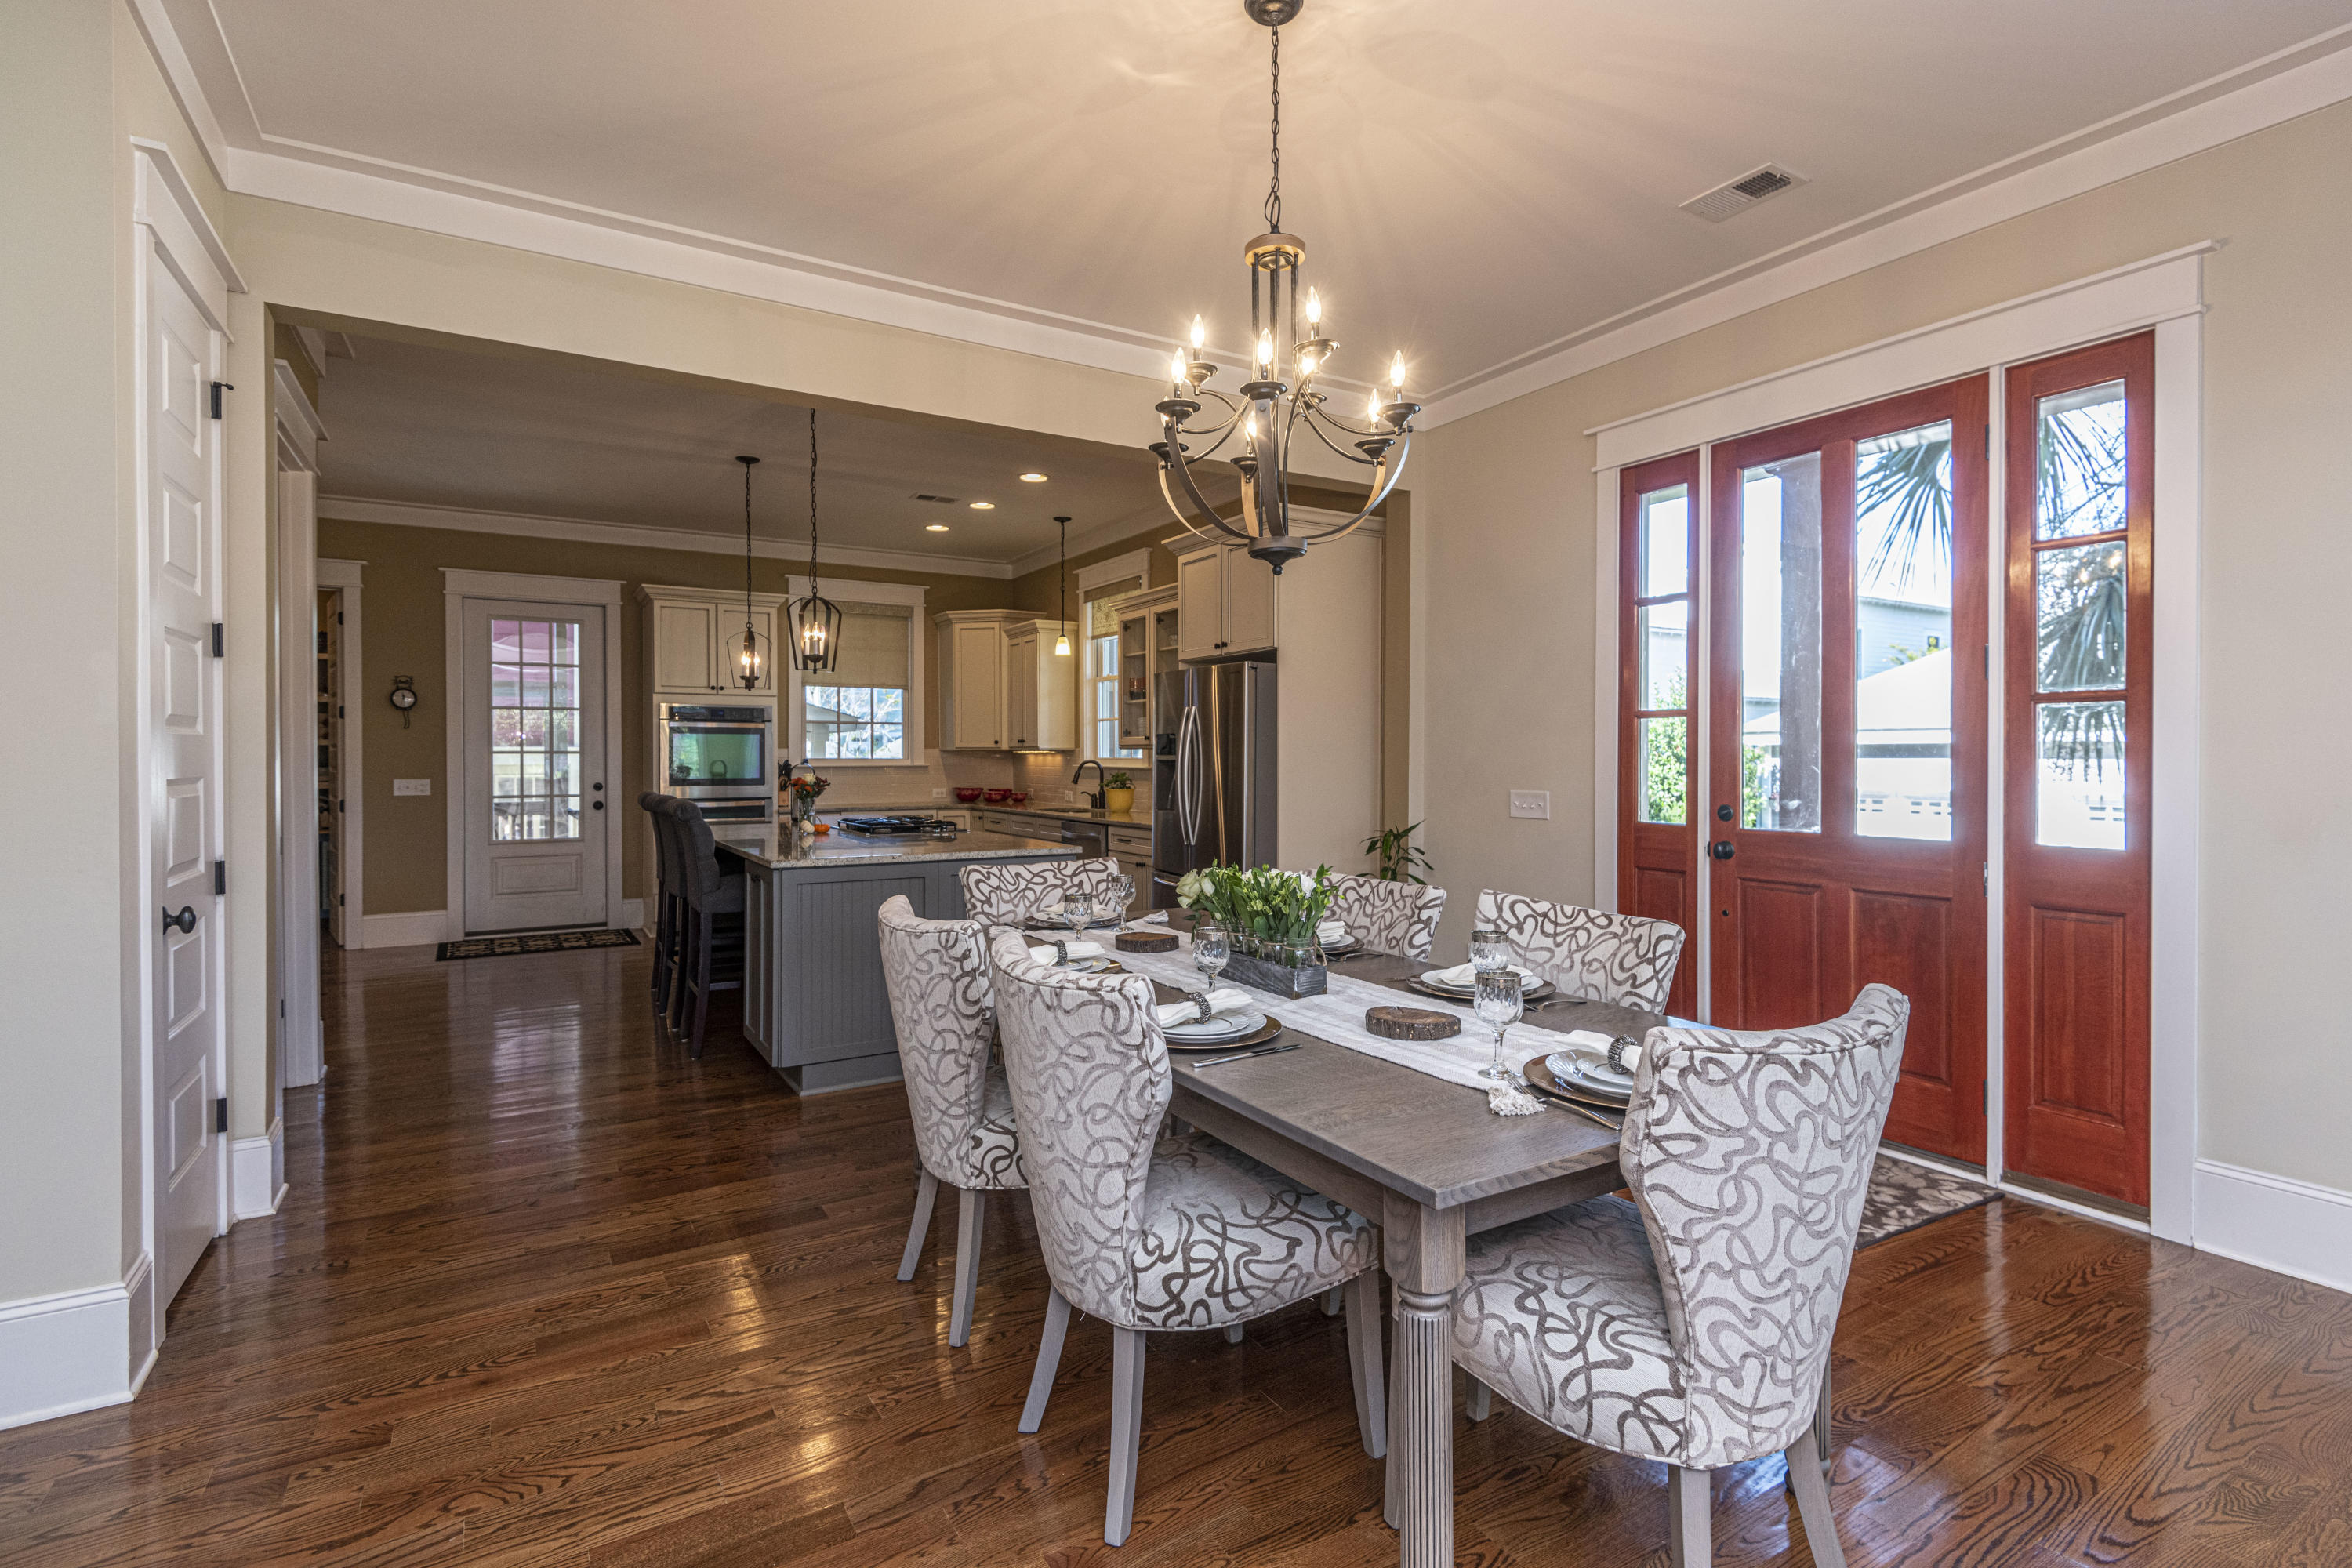 Watermark Homes For Sale - 1401 Lettered Olive, Mount Pleasant, SC - 6